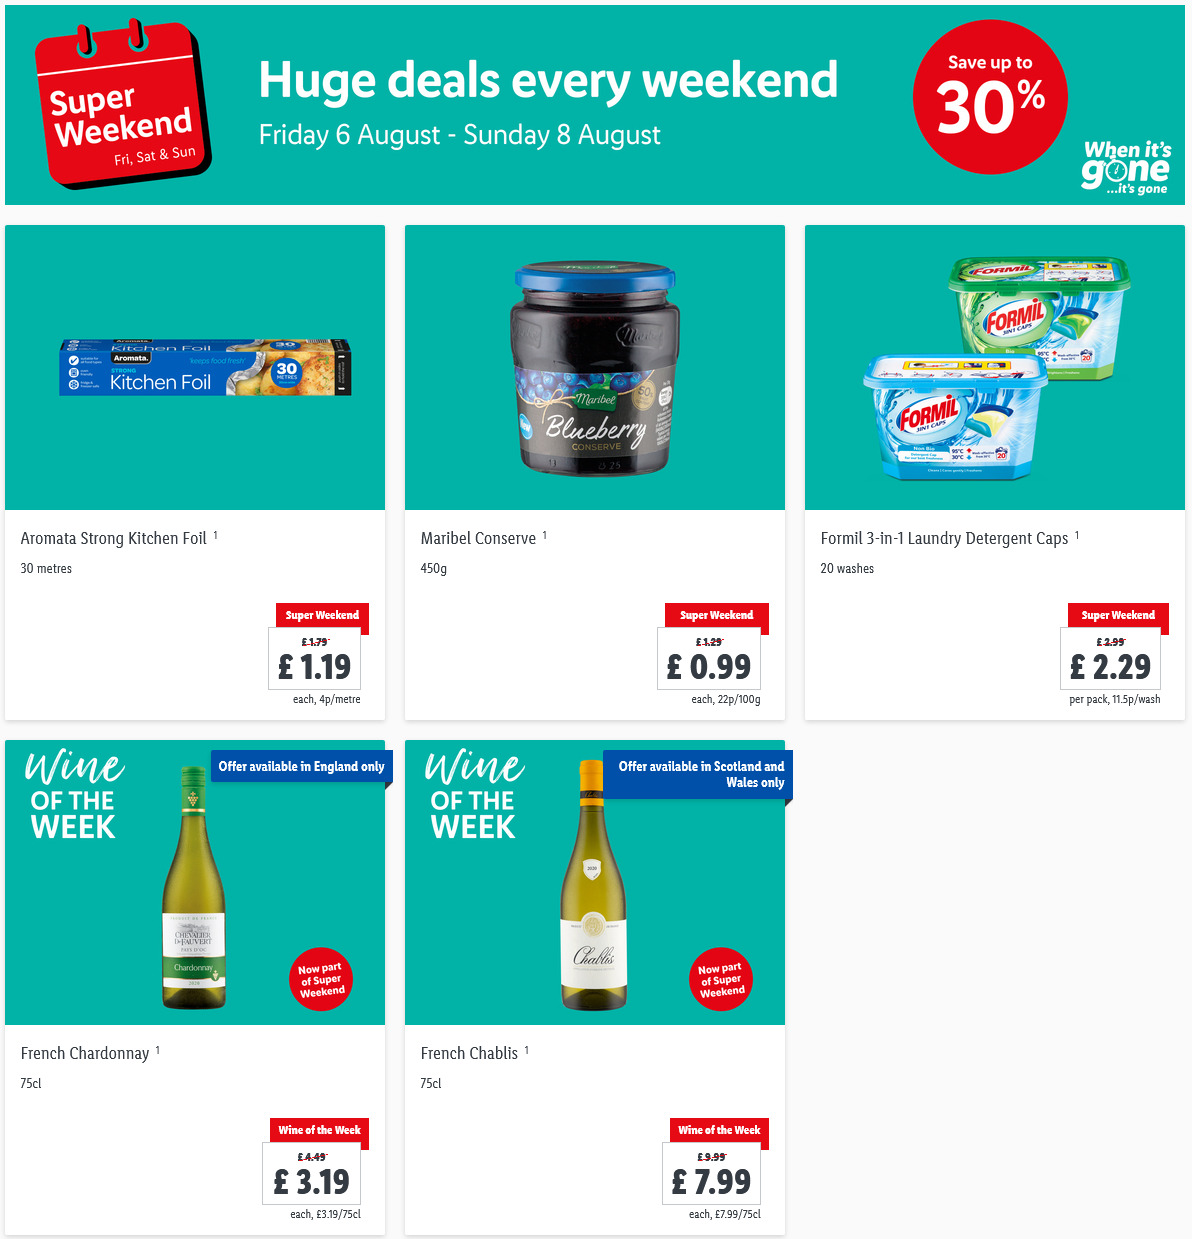 LIDL Weekend Offers from 6th August - 8th August 2021 LIDL Super Weekend